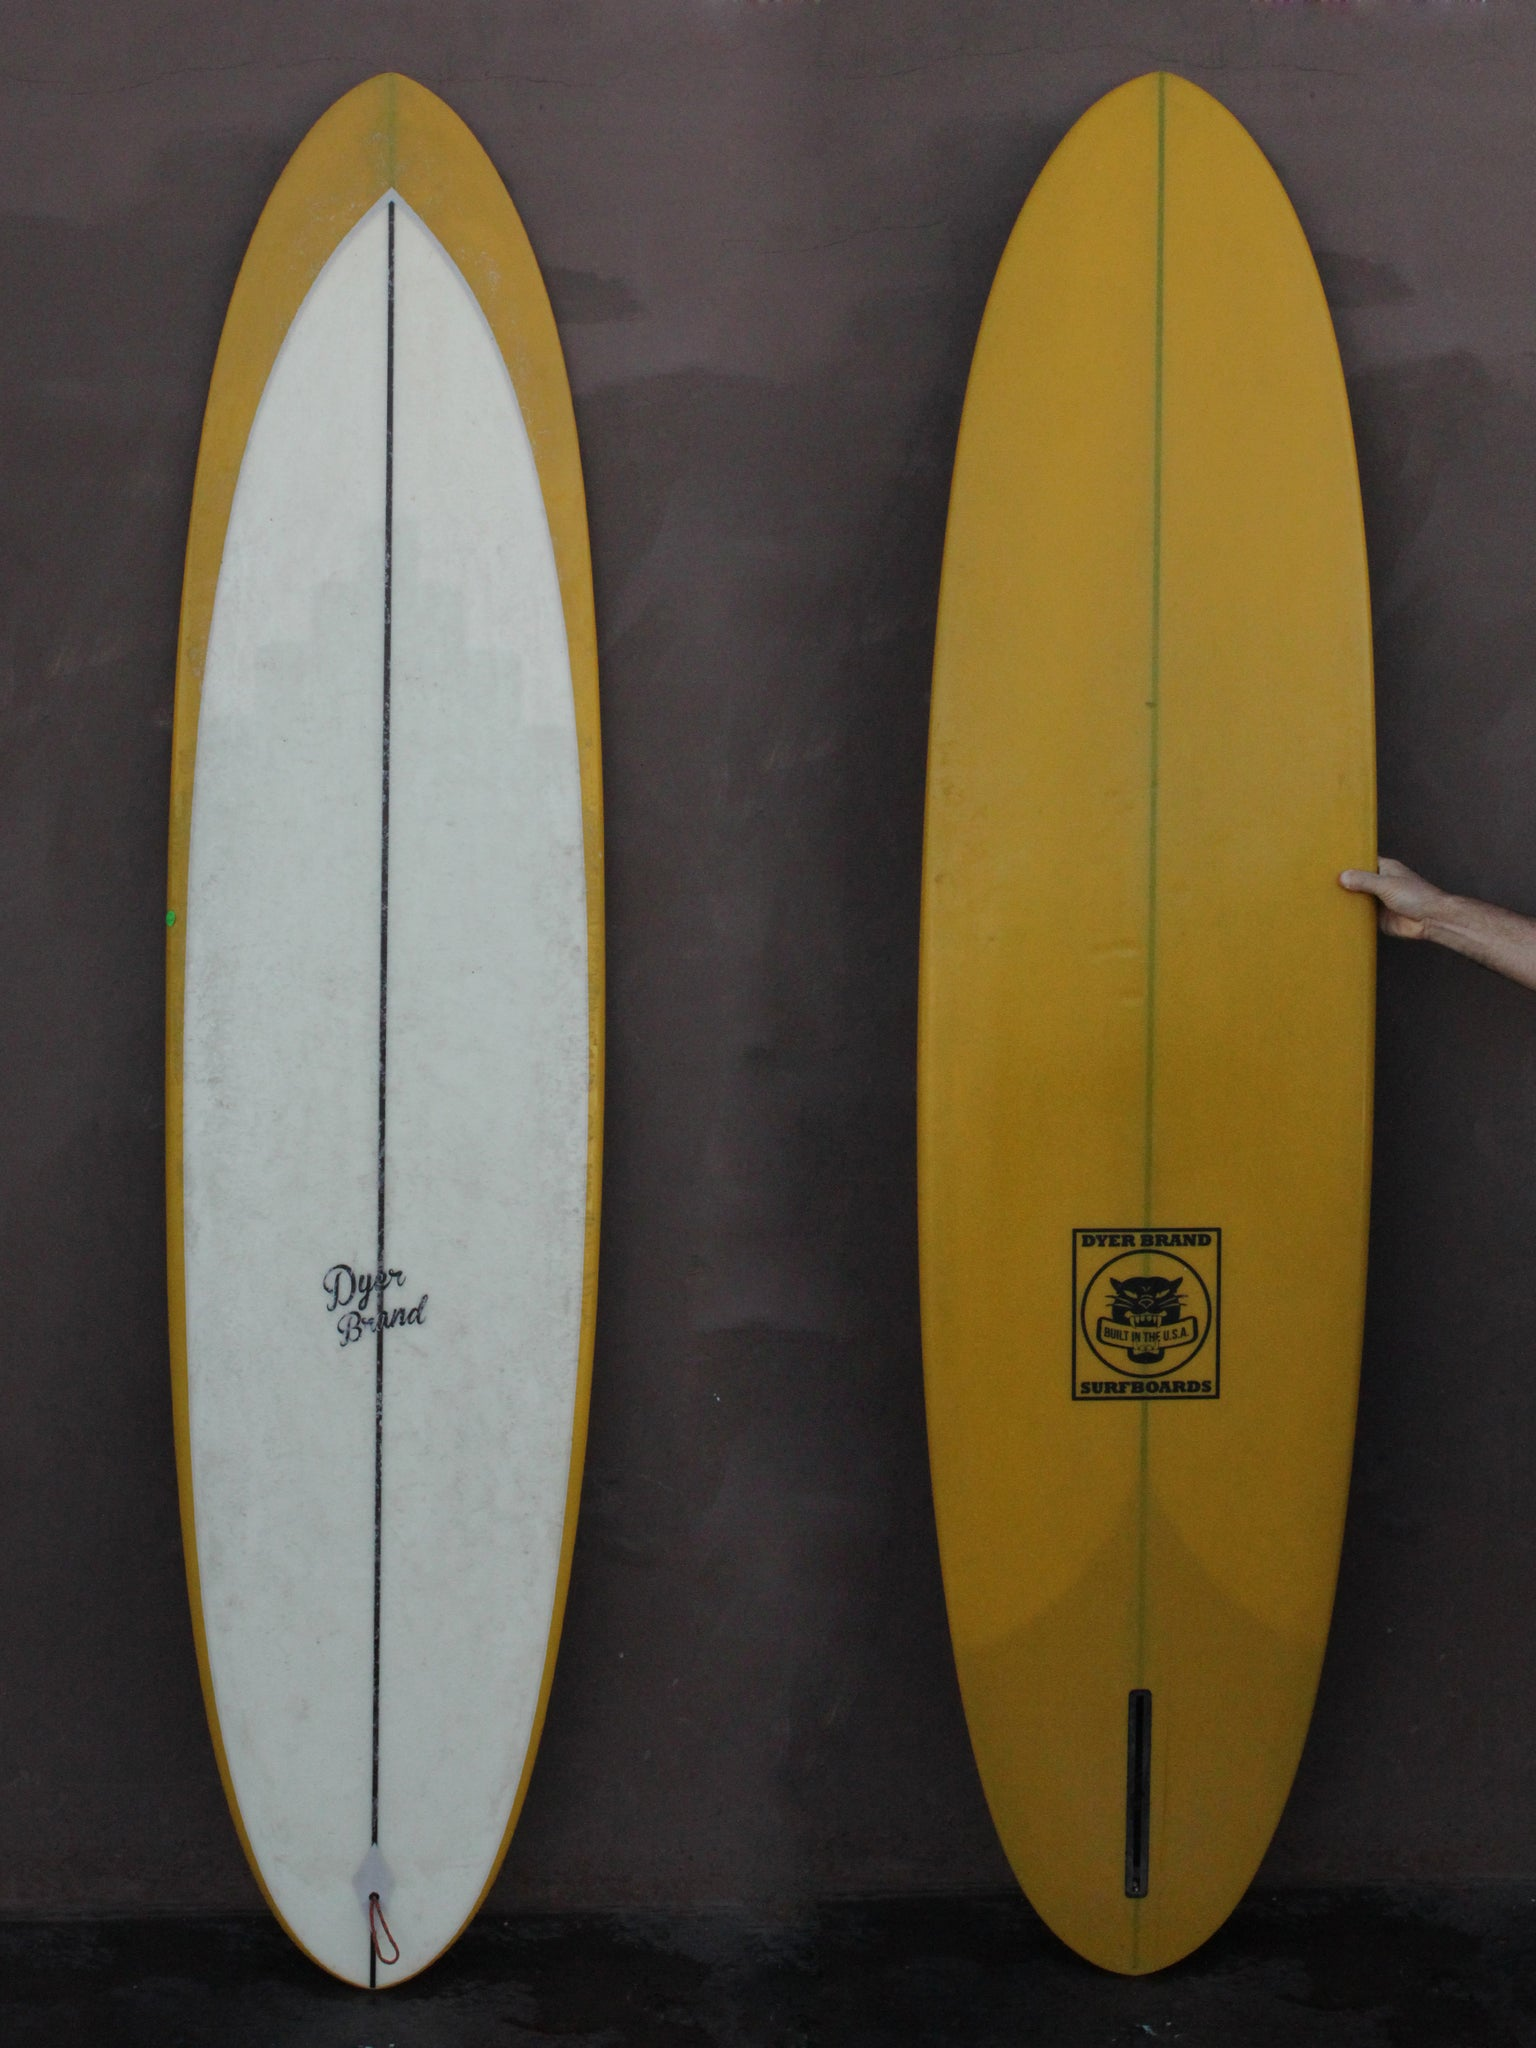 7'9 Dyer Brand Seabee (Used)